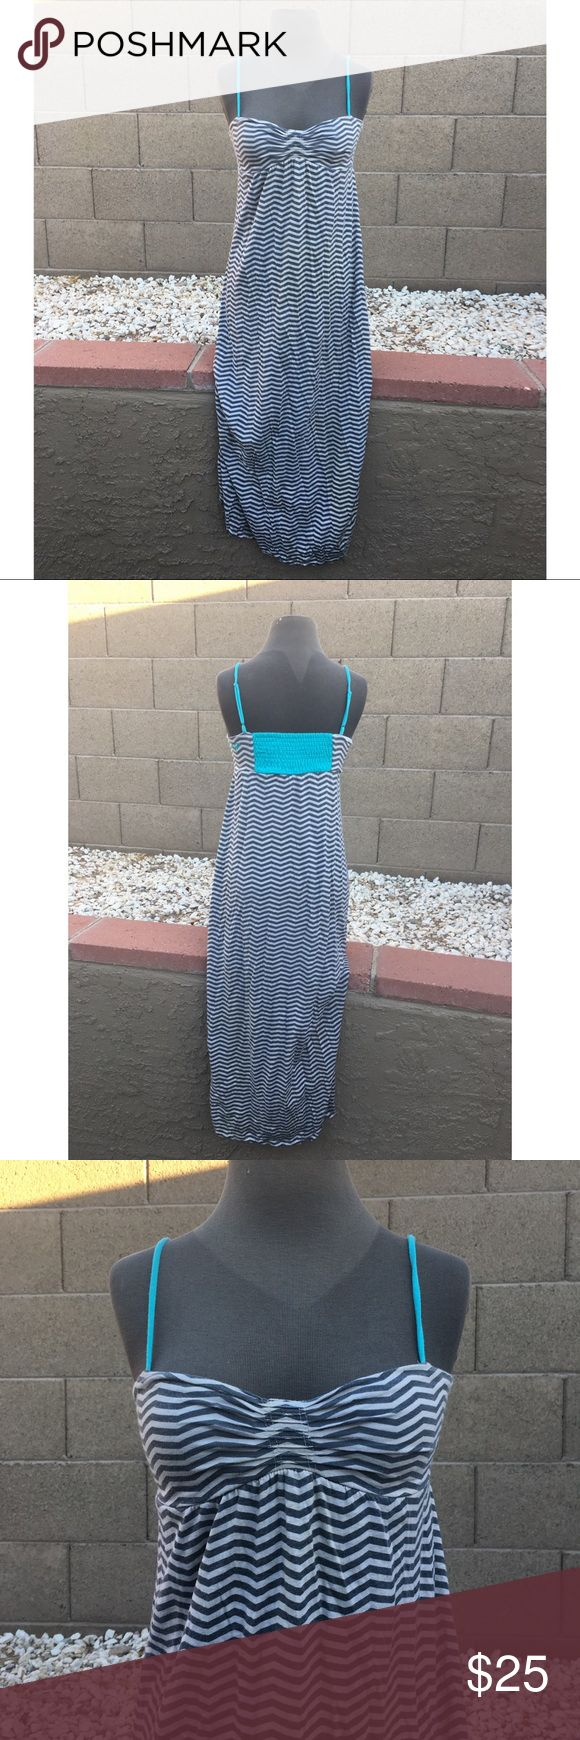 CHEVRON STRIPED Summer Maxi, Adjustable Straps This dress will take you through a whole summer day! Throw on over your bikini with some flip flops and head to the water! Change into some cute sandals and a cardi for an evening out. Super comfortable and versatile, too! What could be better! Elastic rouching in back to accommodate variation in bust/back size. Gently used, excellent condition. Color is gray, white, and turquoise Roxy Dresses Maxi